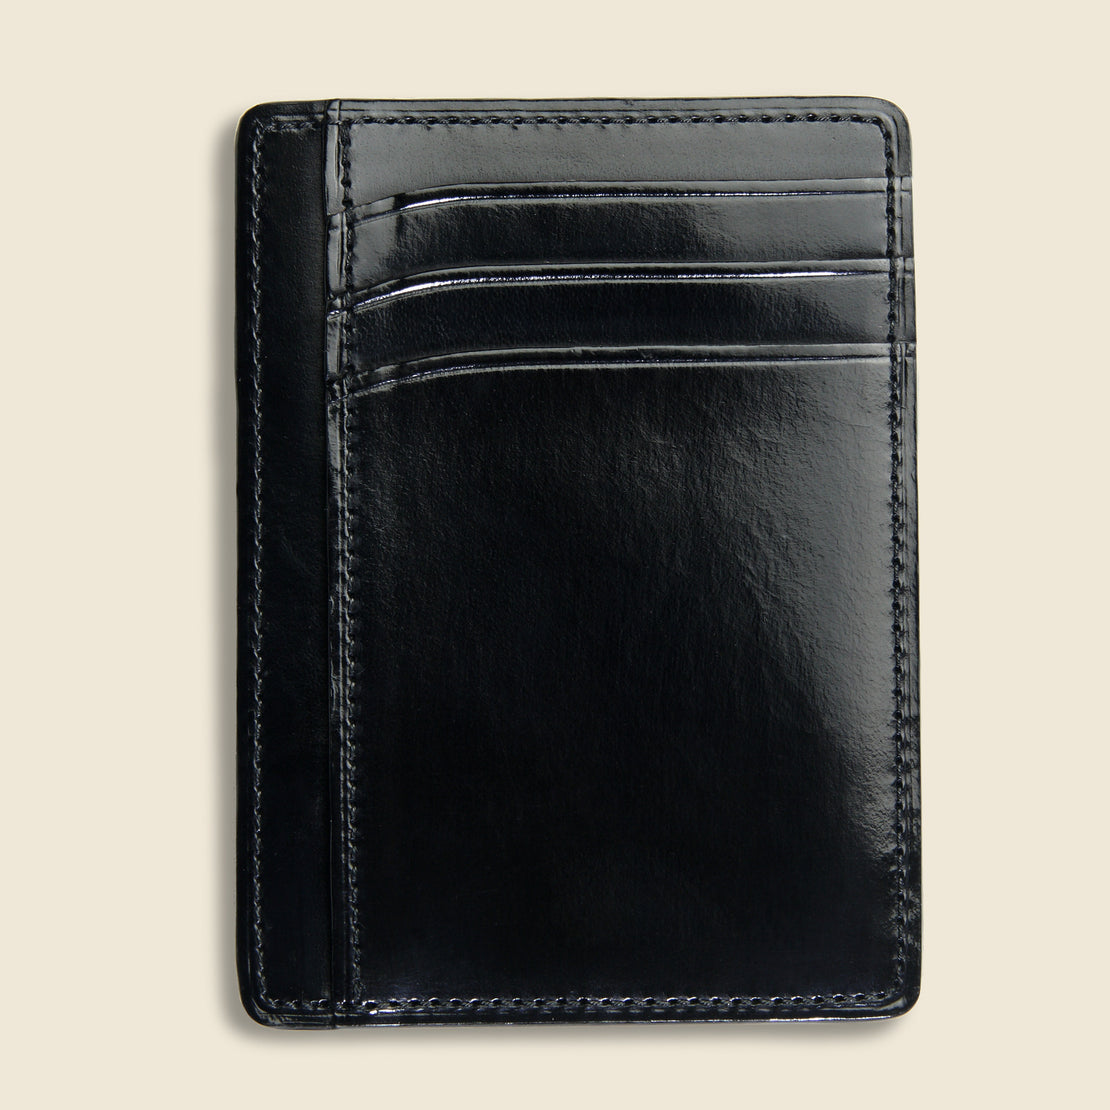 Card and Document Case - Black - Il Bussetto - STAG Provisions - Accessories - Wallets